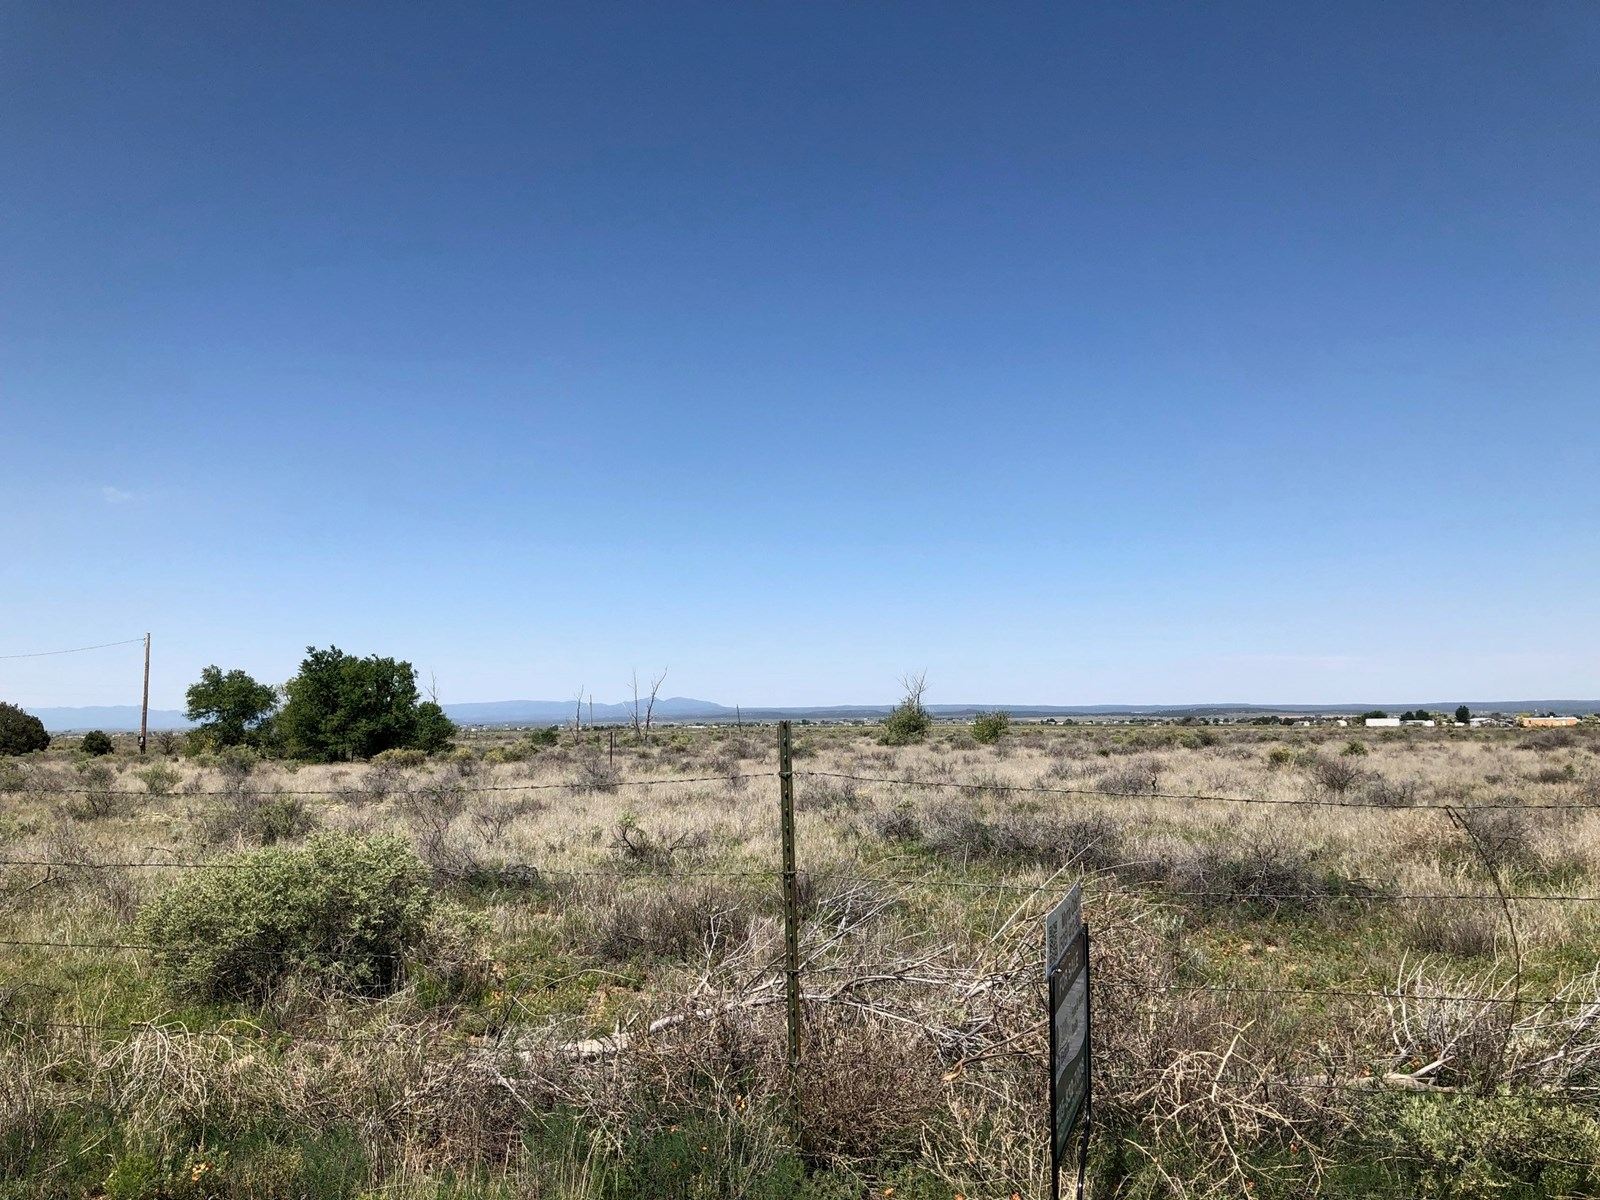 New Mexico 35 Acres For Sale in the Estancia Valley